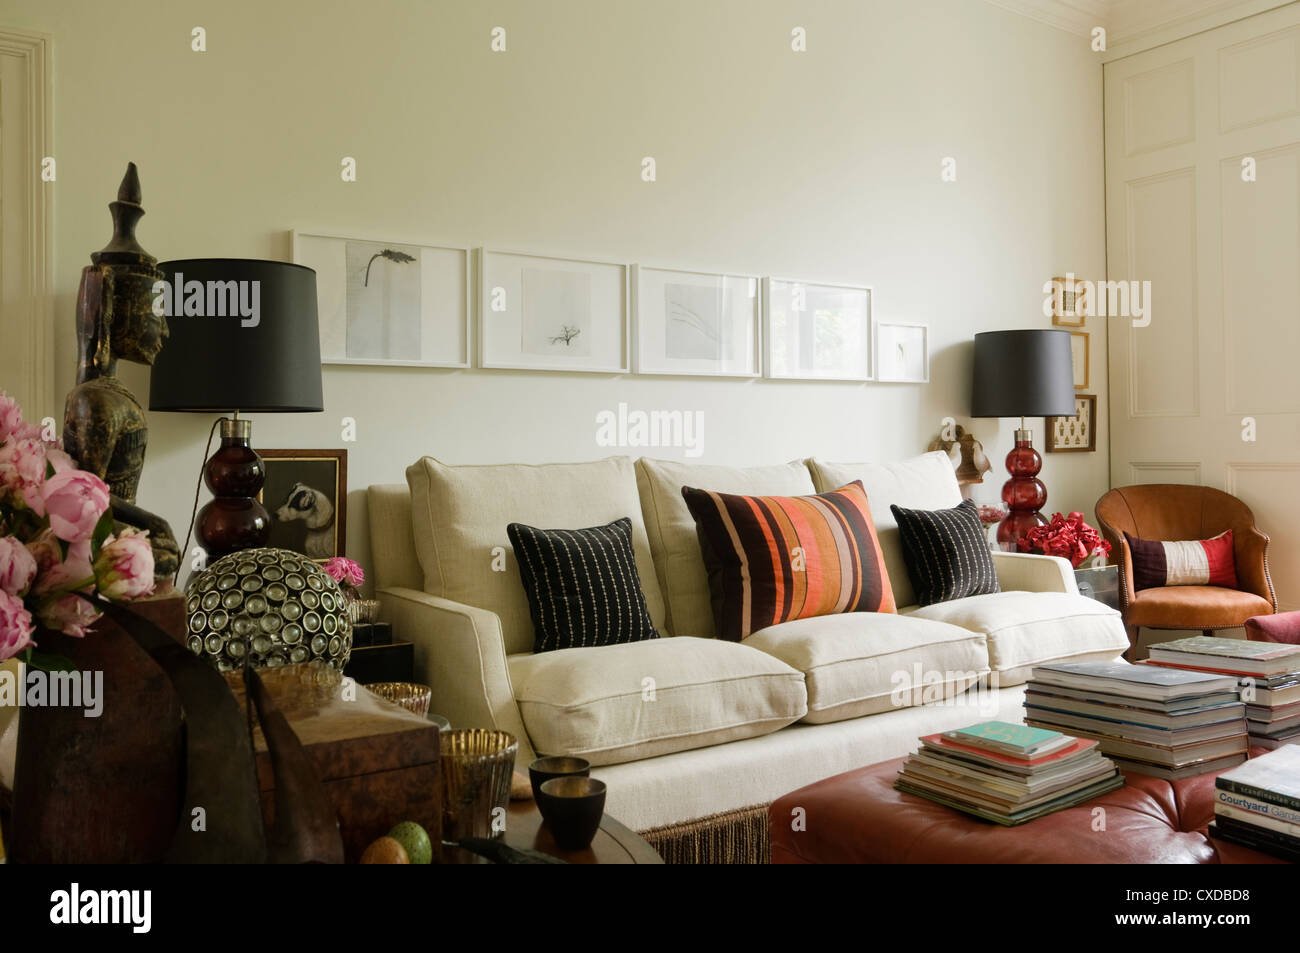 Living Room With Soft Furnishings In Designer Fabrics Stock Photo